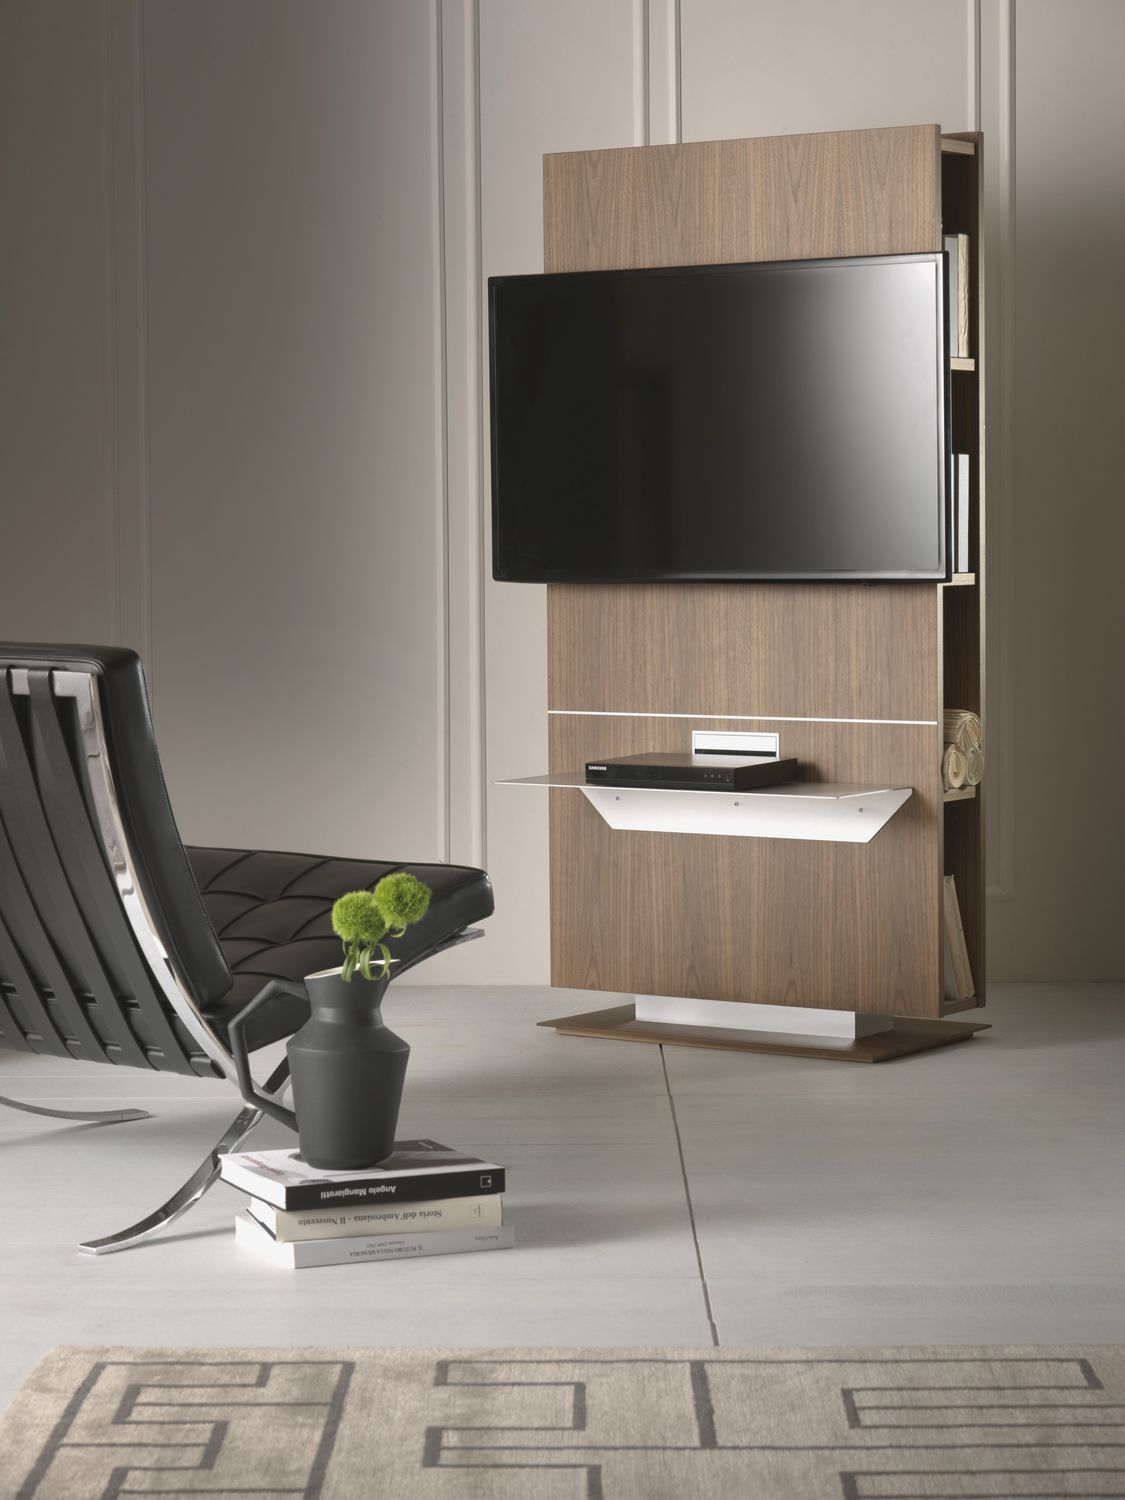 Supporto per TV da terra moderno - LOUNGE by Fabio Rebosio - Pacini ...